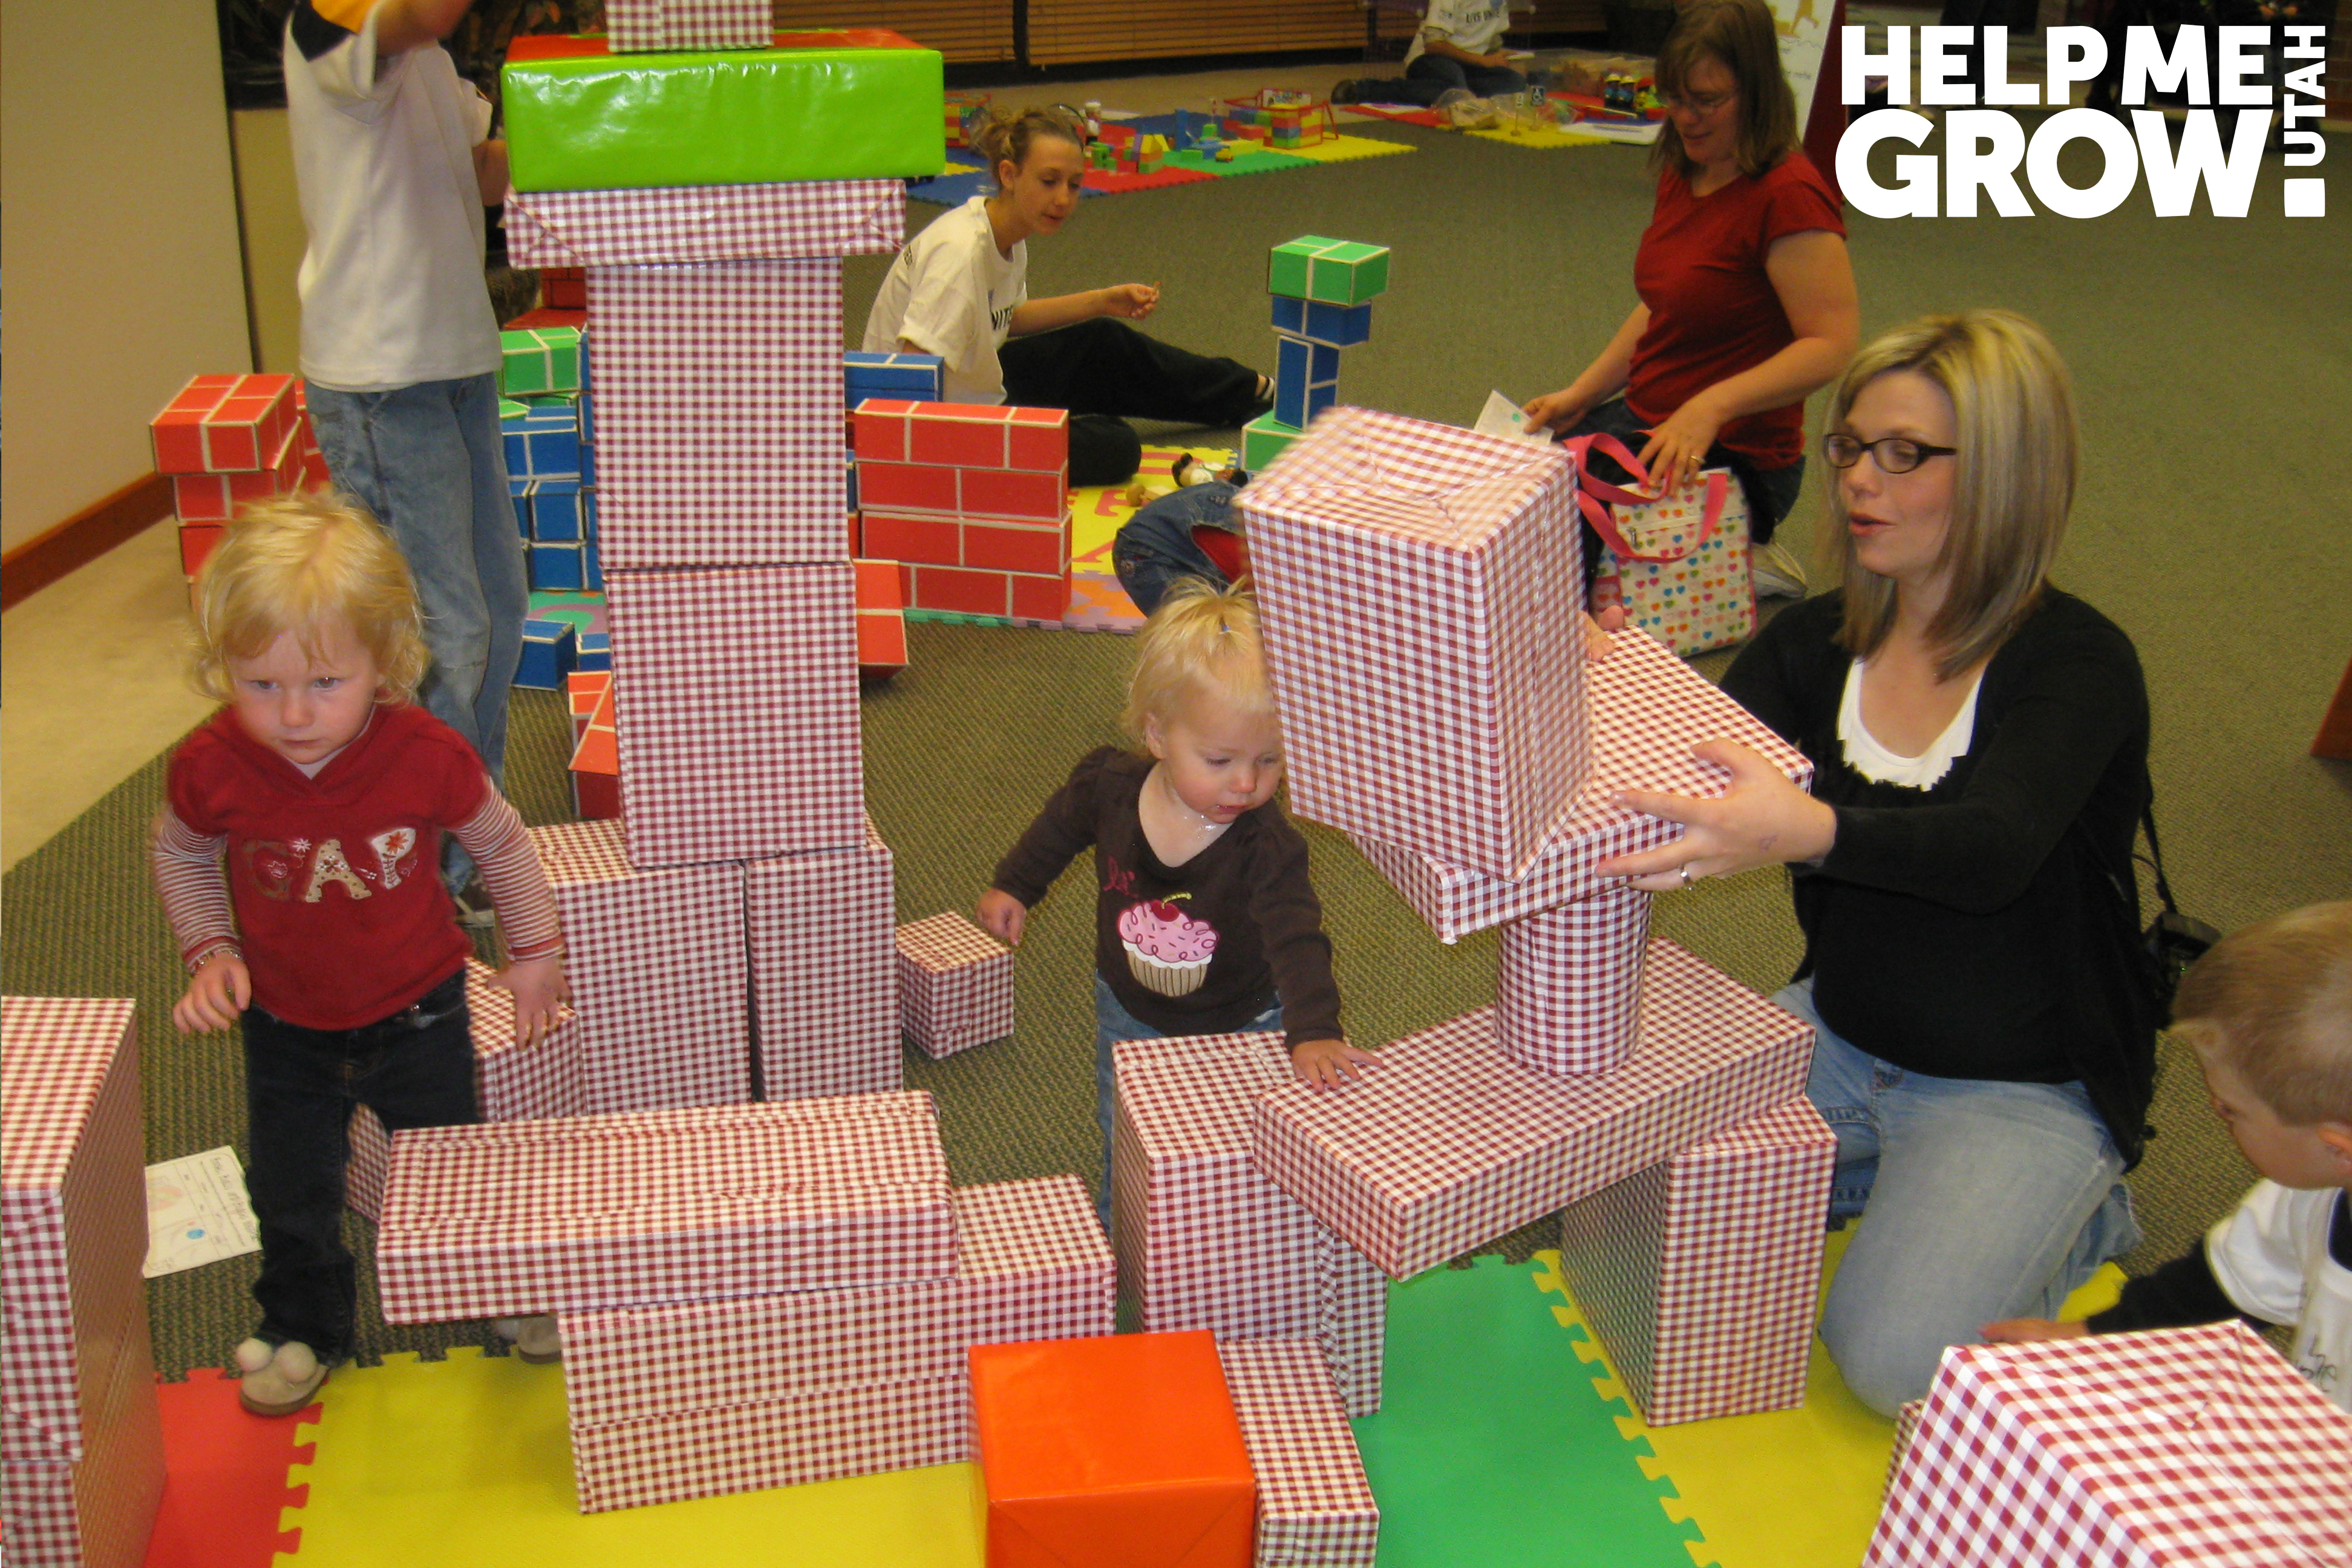 Mother and young daughter stack blocks together at a Books Blocks & Balls event in Utah